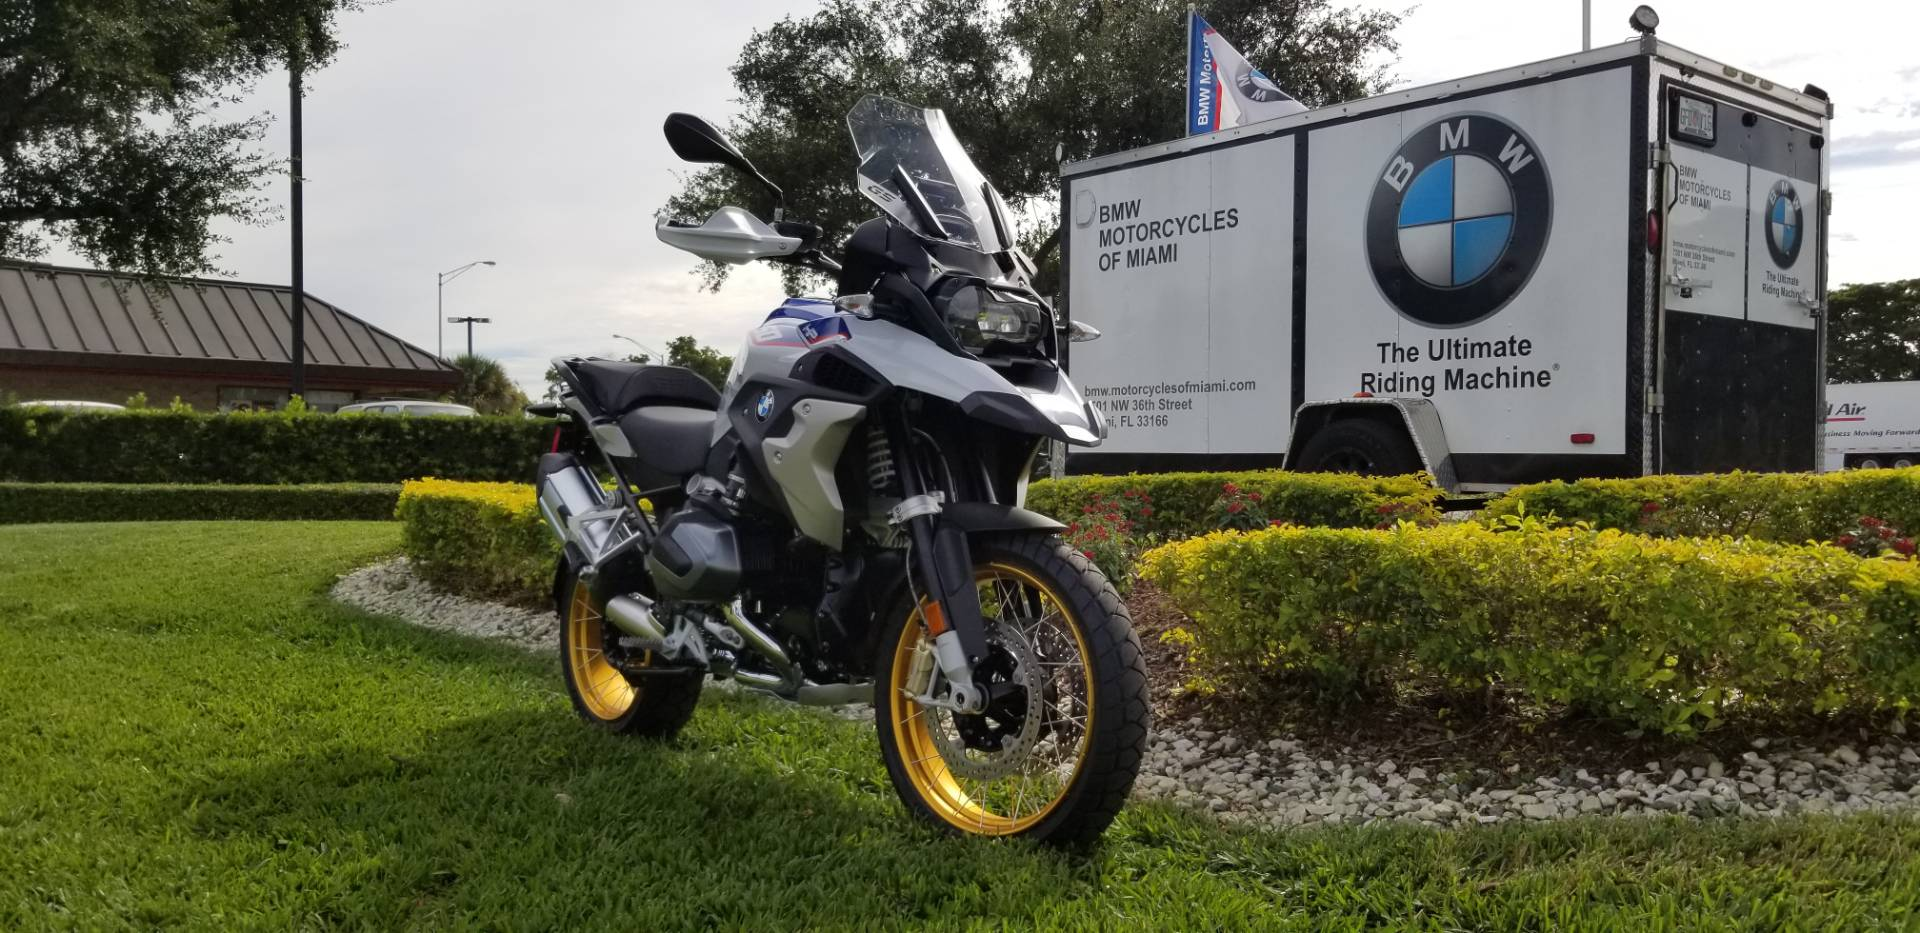 New 2019 BMW R 1250 GS for sale, New BMW for sale R 1250GS, New BMW Motorcycle R1250GS for sale, new BMW 1250GS, R1250GS, GS. BMW Motorcycles of Miami, Motorcycles of Miami, Motorcycles Miami, New Motorcycles, Used Motorcycles, pre-owned. #BMWMotorcyclesOfMiami #MotorcyclesOfMiami. - Photo 32